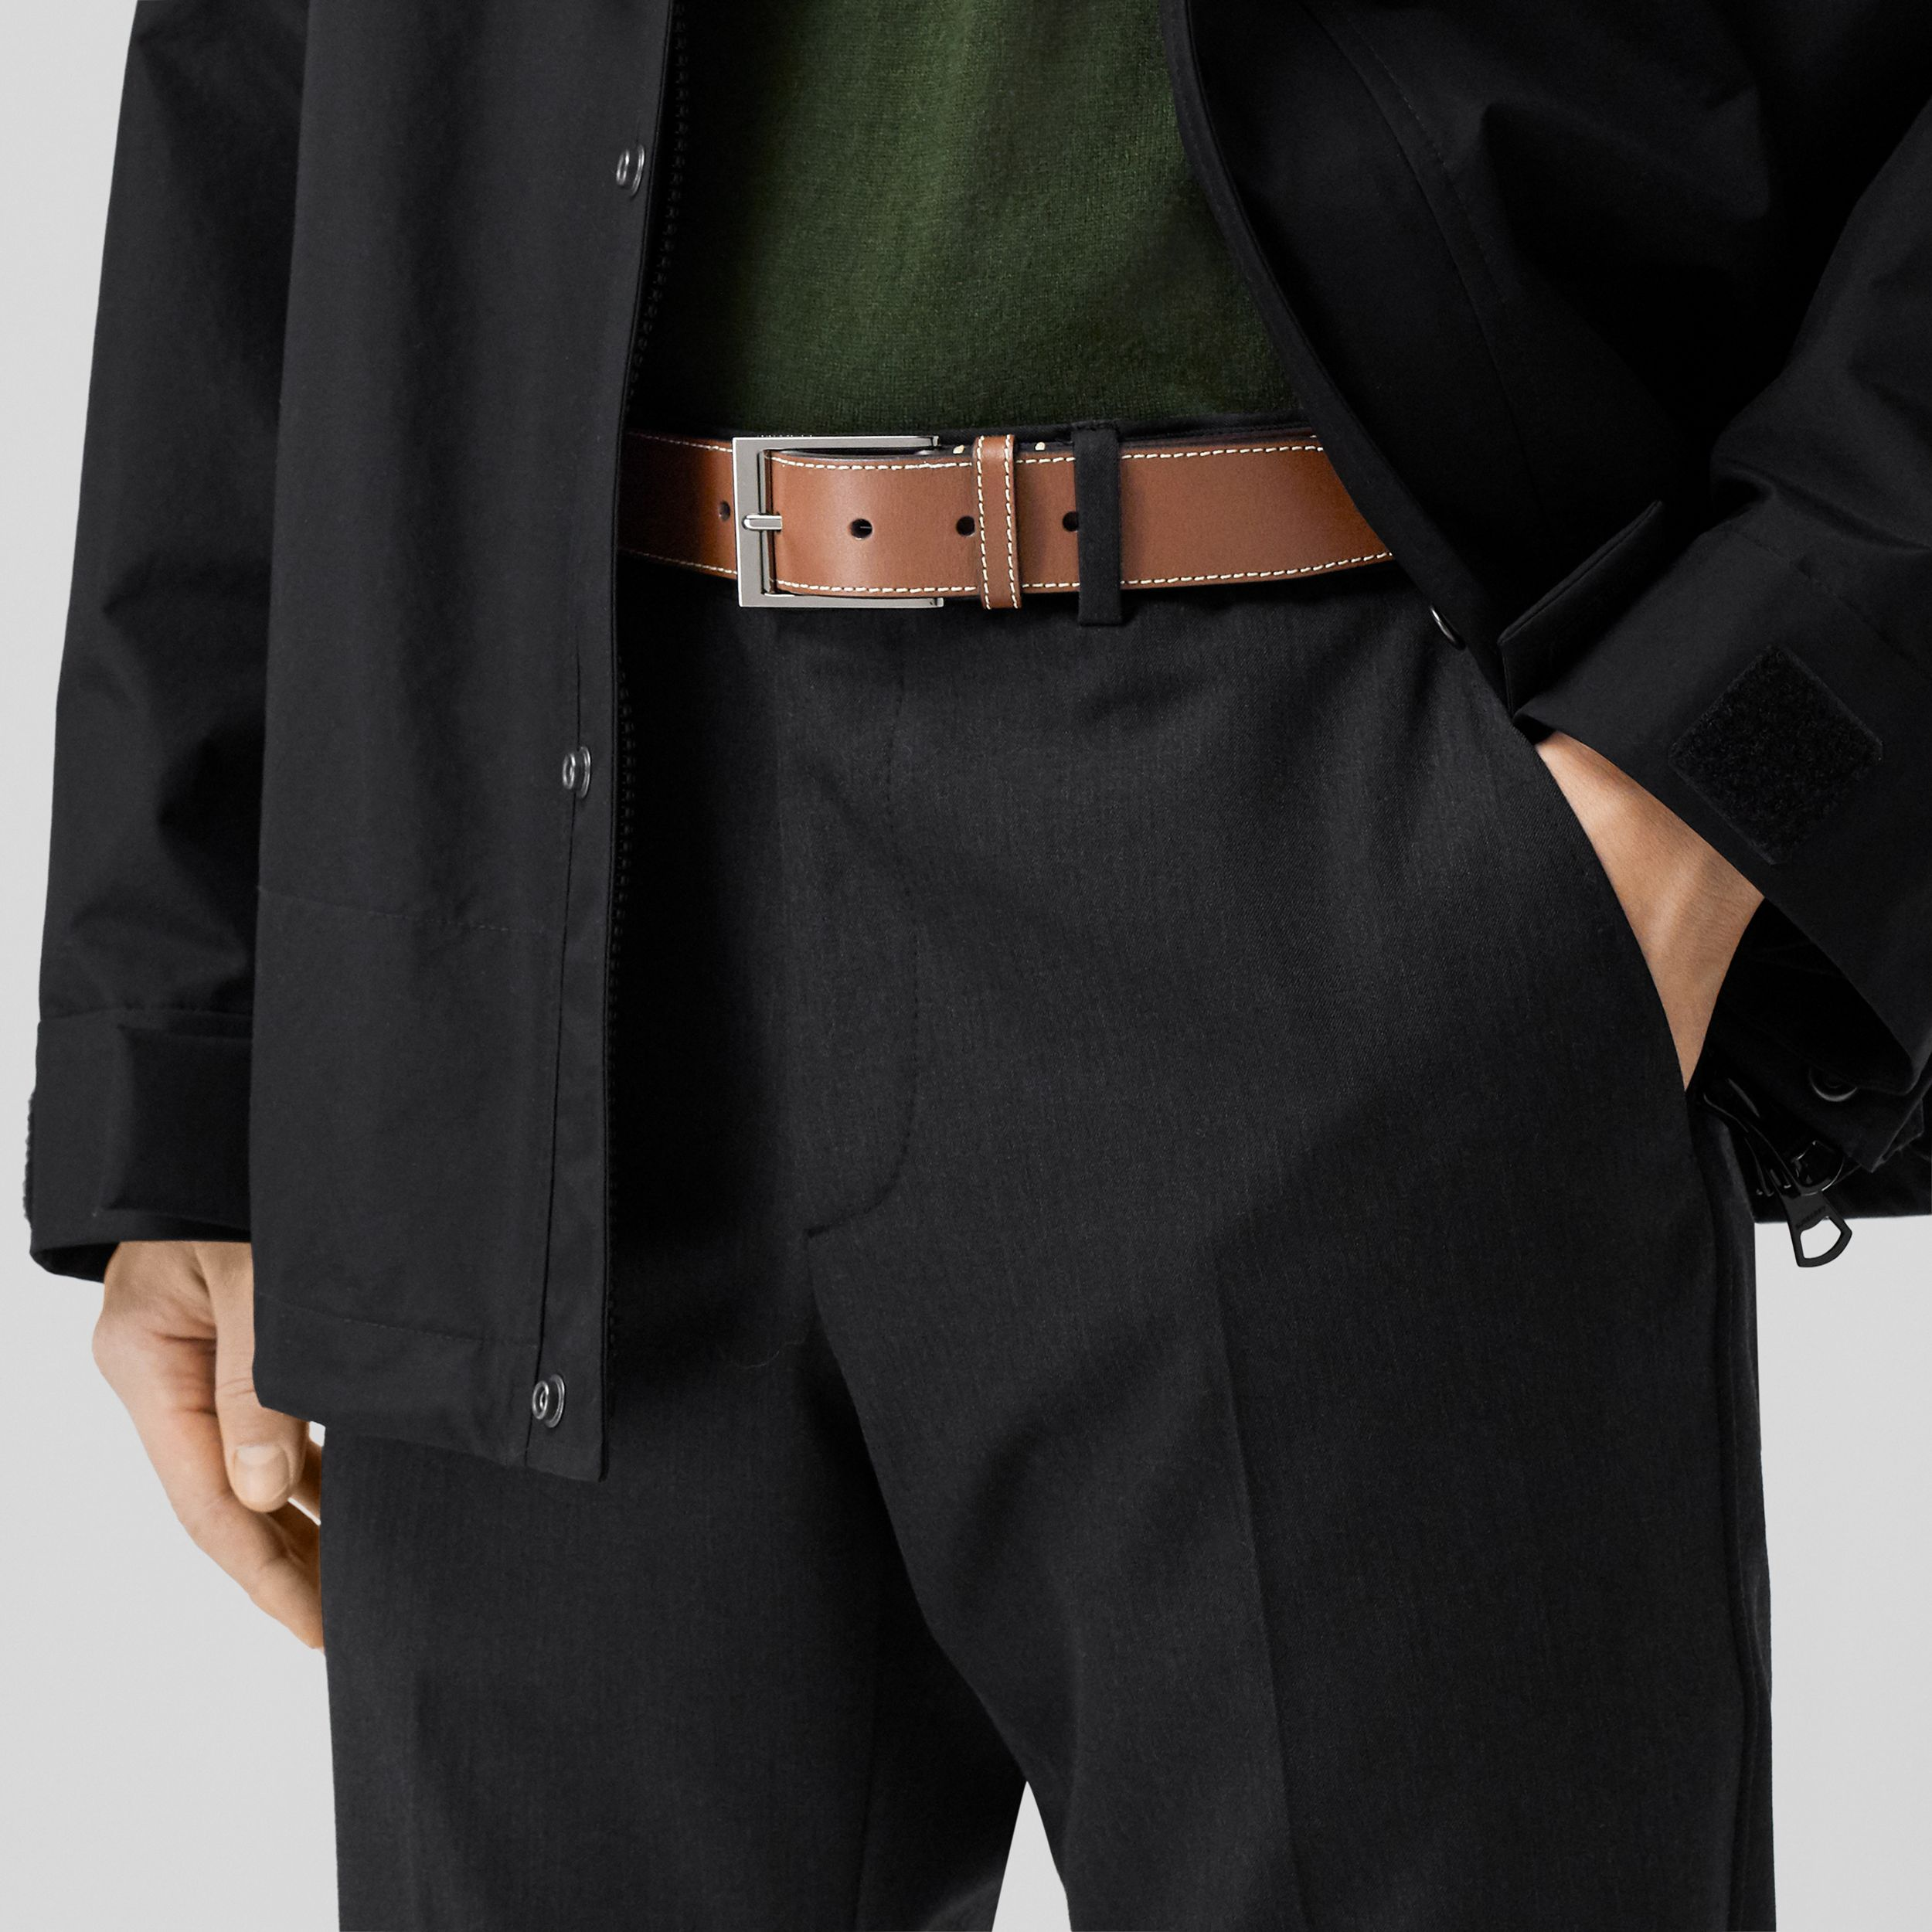 Topstitched Leather Belt in Tan - Men | Burberry - 3